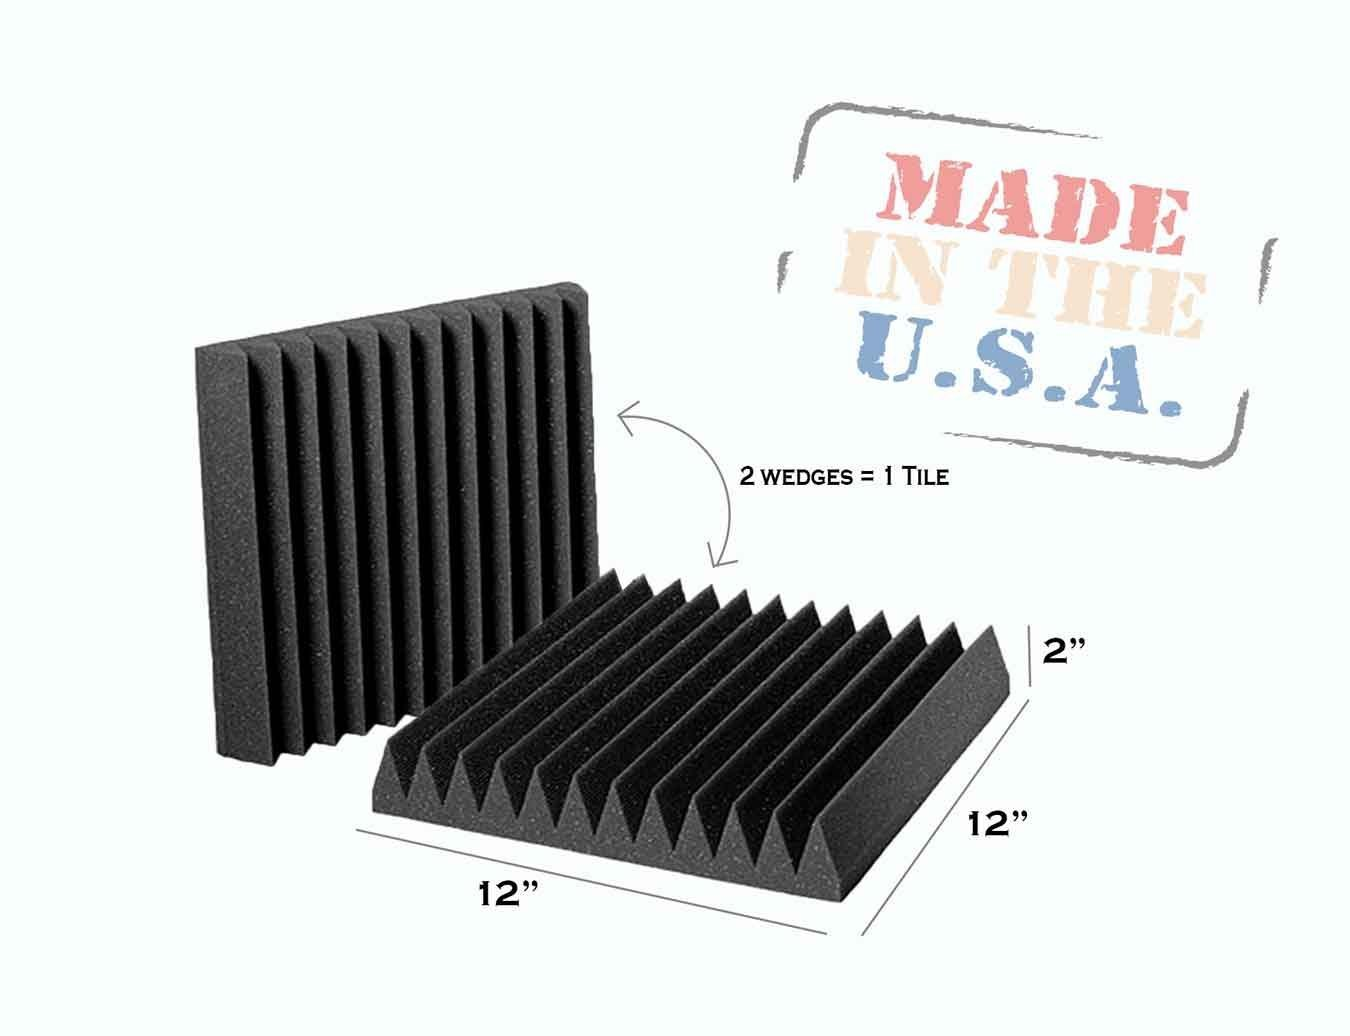 AK TRADING 2 Pack Charcoal Acoustic Panels Studio Foam Wedges 2 x 12 x 12 Inches AK TRADING CO.